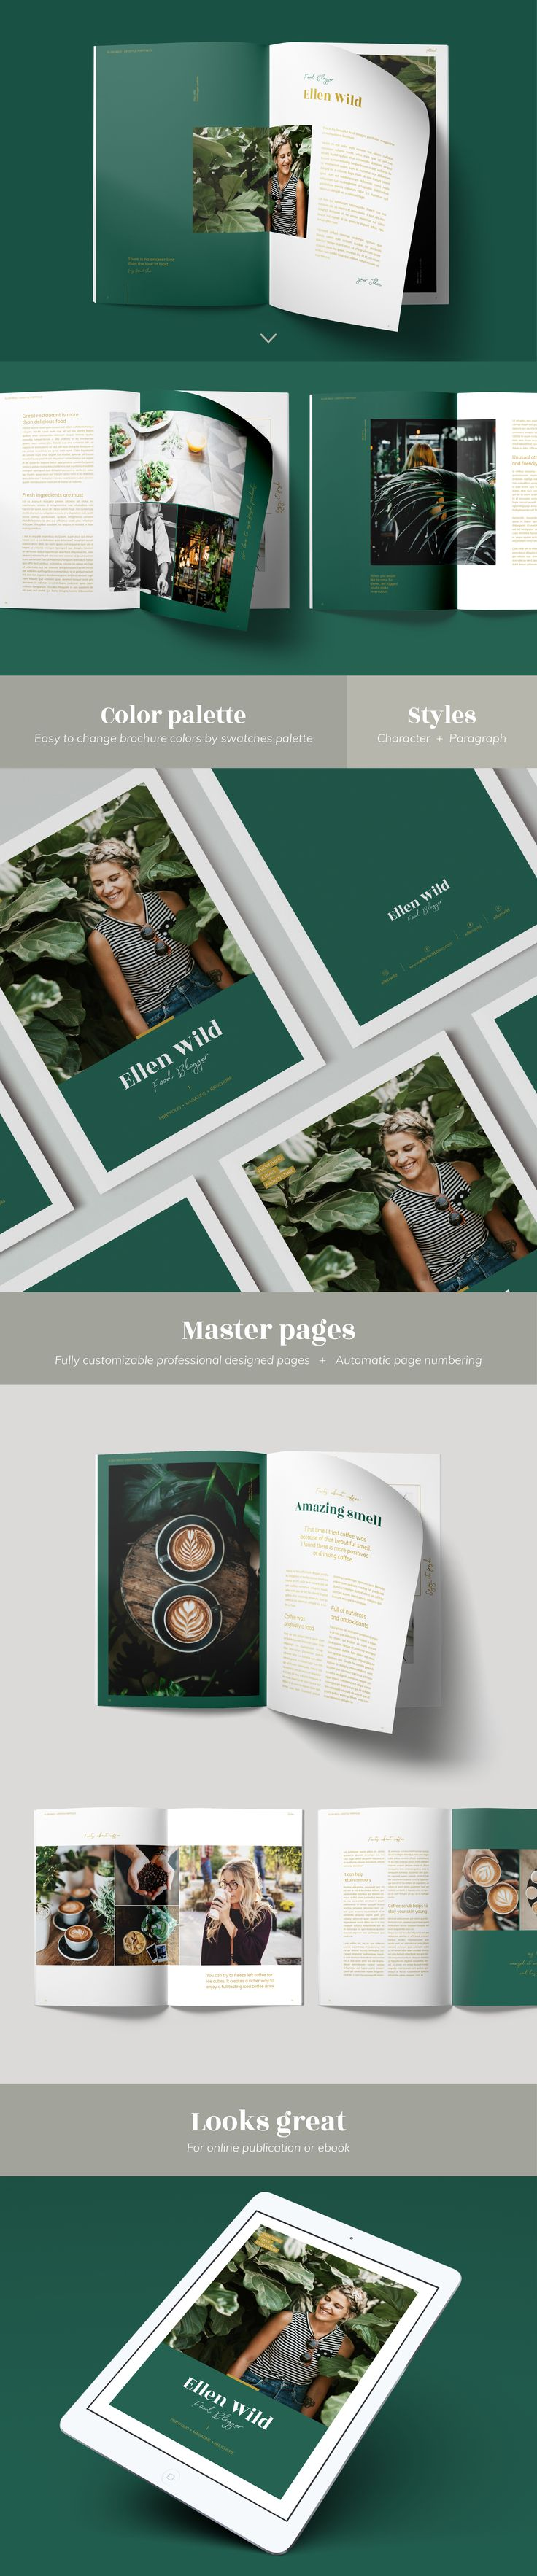 Beautiful professional InDesign template, great for your brochure, magazine, portfolio, lookbook or also for recipe book. It has nice modern style, with eye catching page layouts.   . . . . #magazine #template #indesigntemplate #brochure #creativemarket #portfolio #lookbook #foodblogger #recipebook #indesign #mirazz #graphicdesign #womandesign #grid #layoutdesign #layout #editorial #editorialdesign